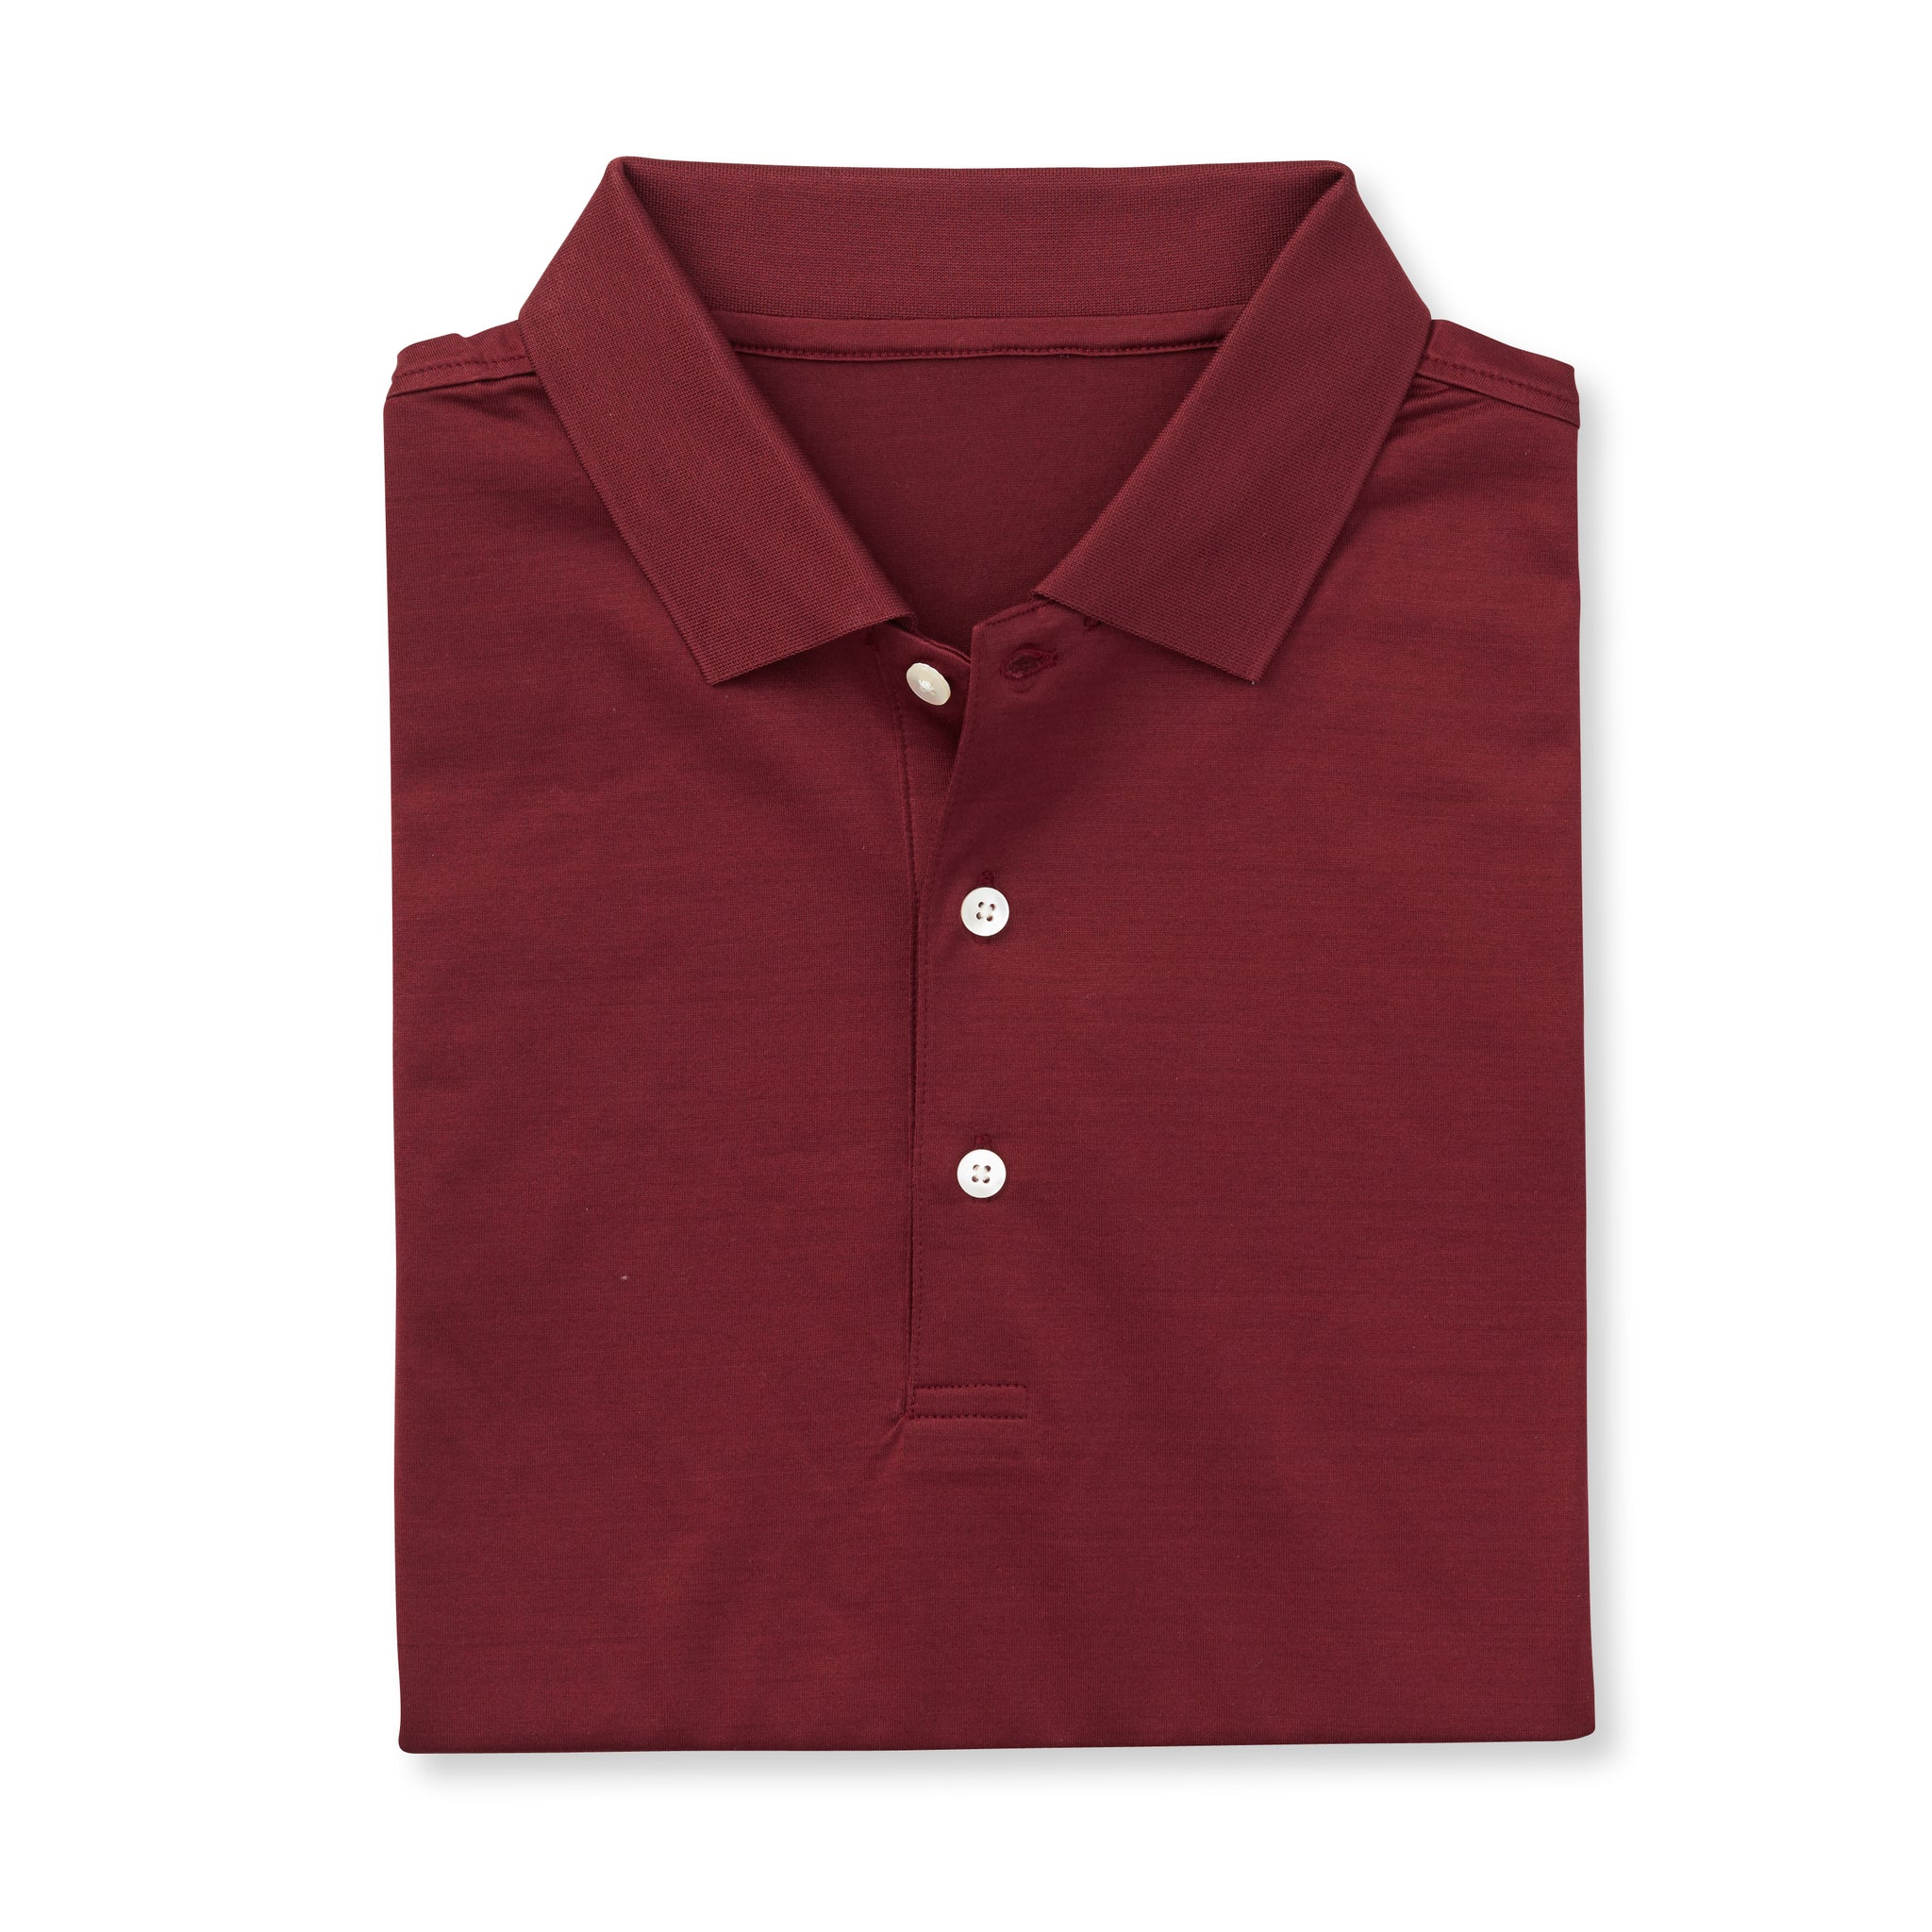 SUPIMA Short Sleeve Mercerized Polo - Merlot IS62200